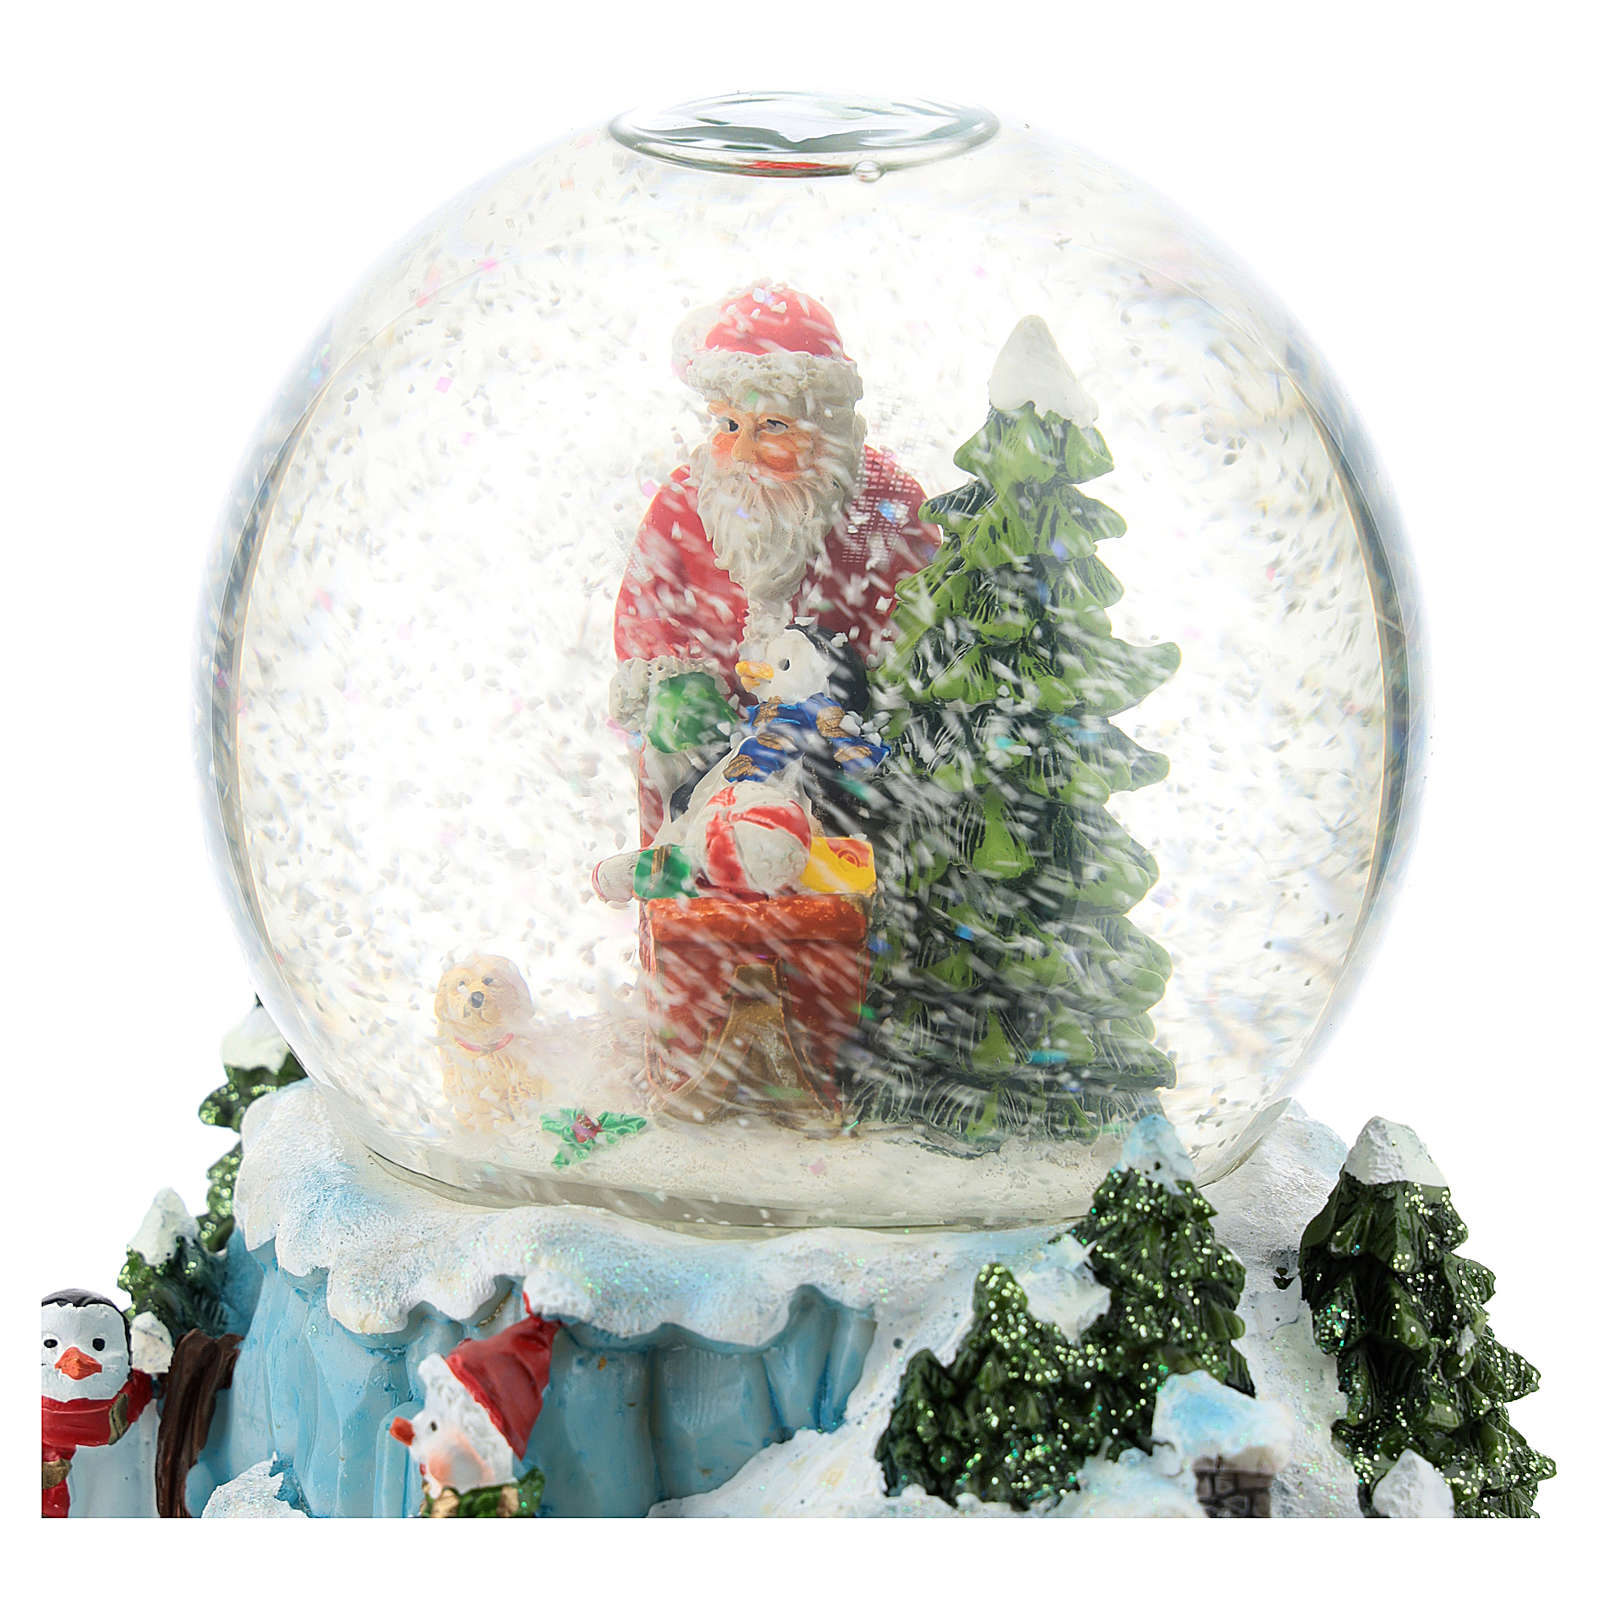 Glass ball with Santa Claus and sled h. 15 cm 3